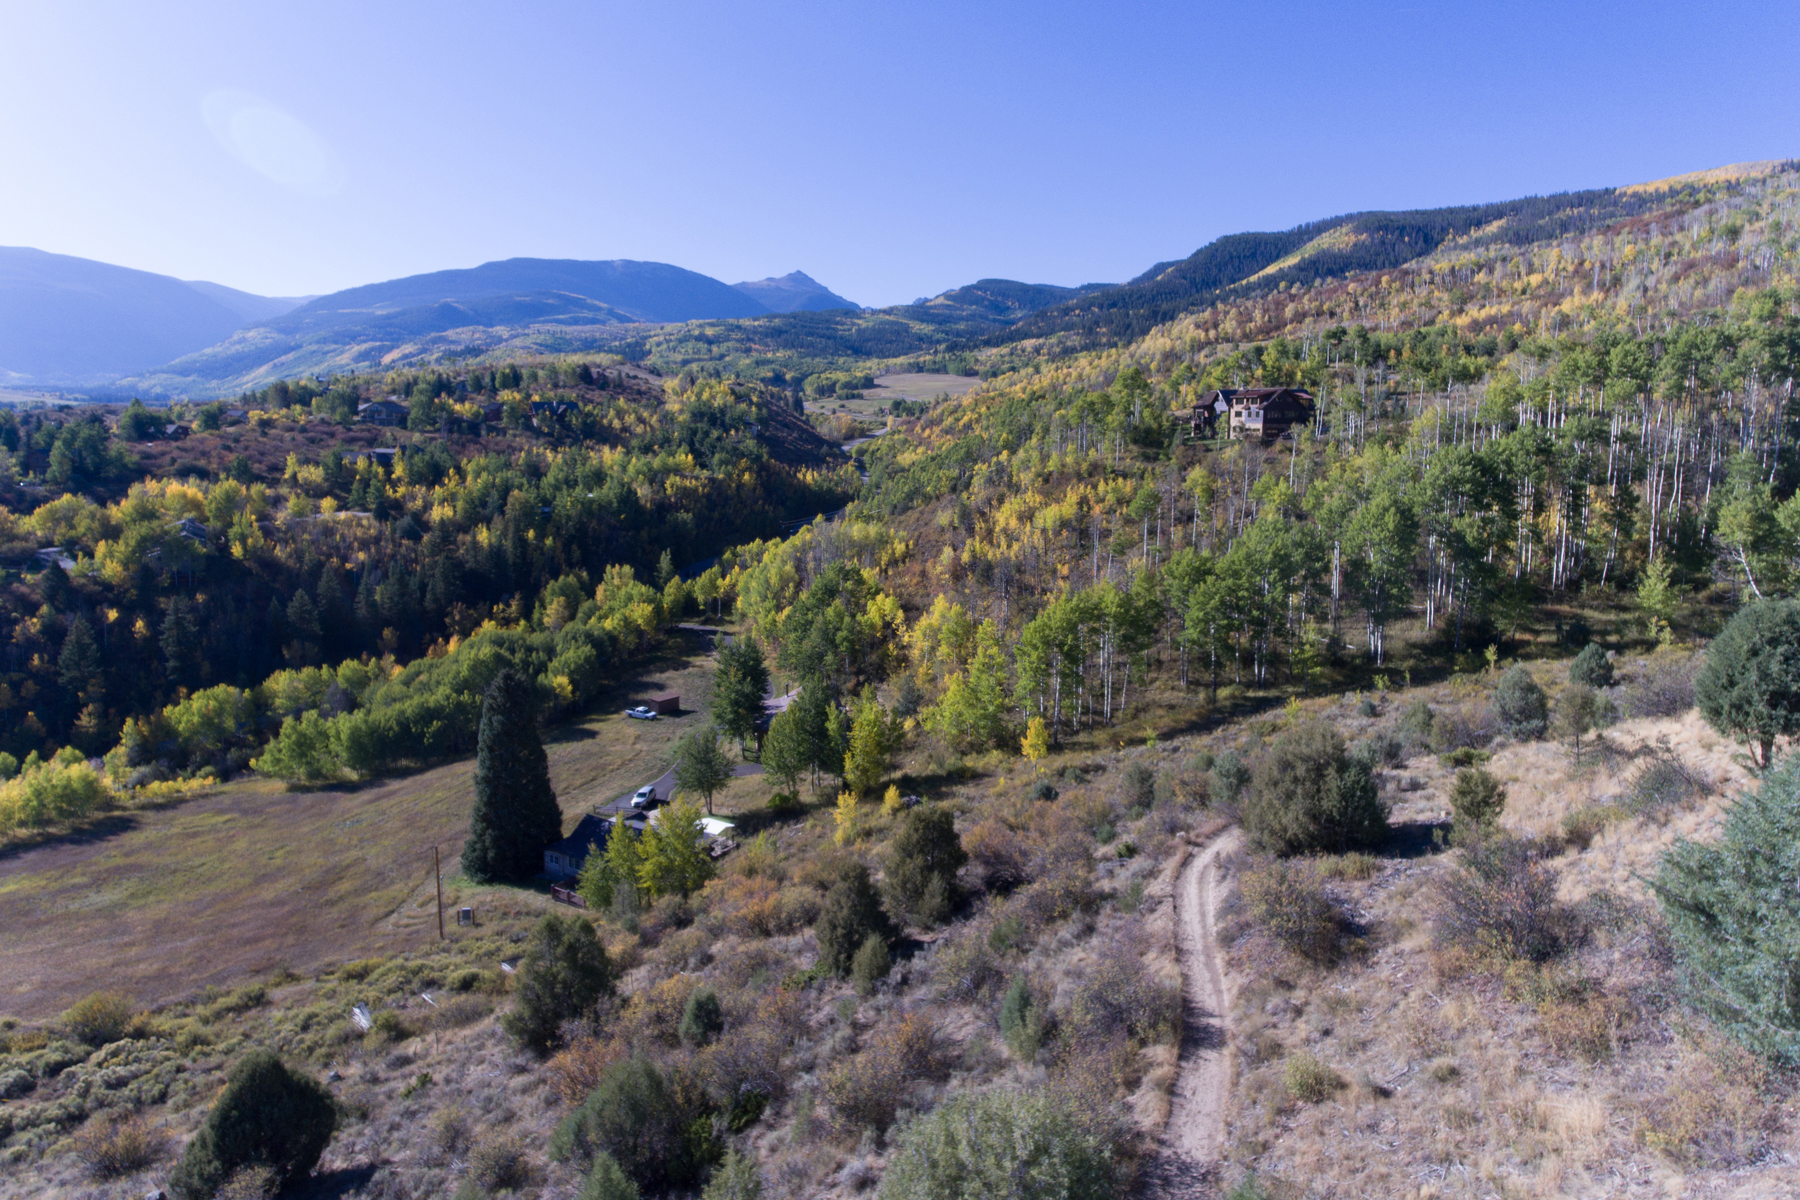 Property for Sale at Panoramic views of the Sawatch Mountain Range 420 Saddle Horn Way Edwards, Colorado 81632 United States